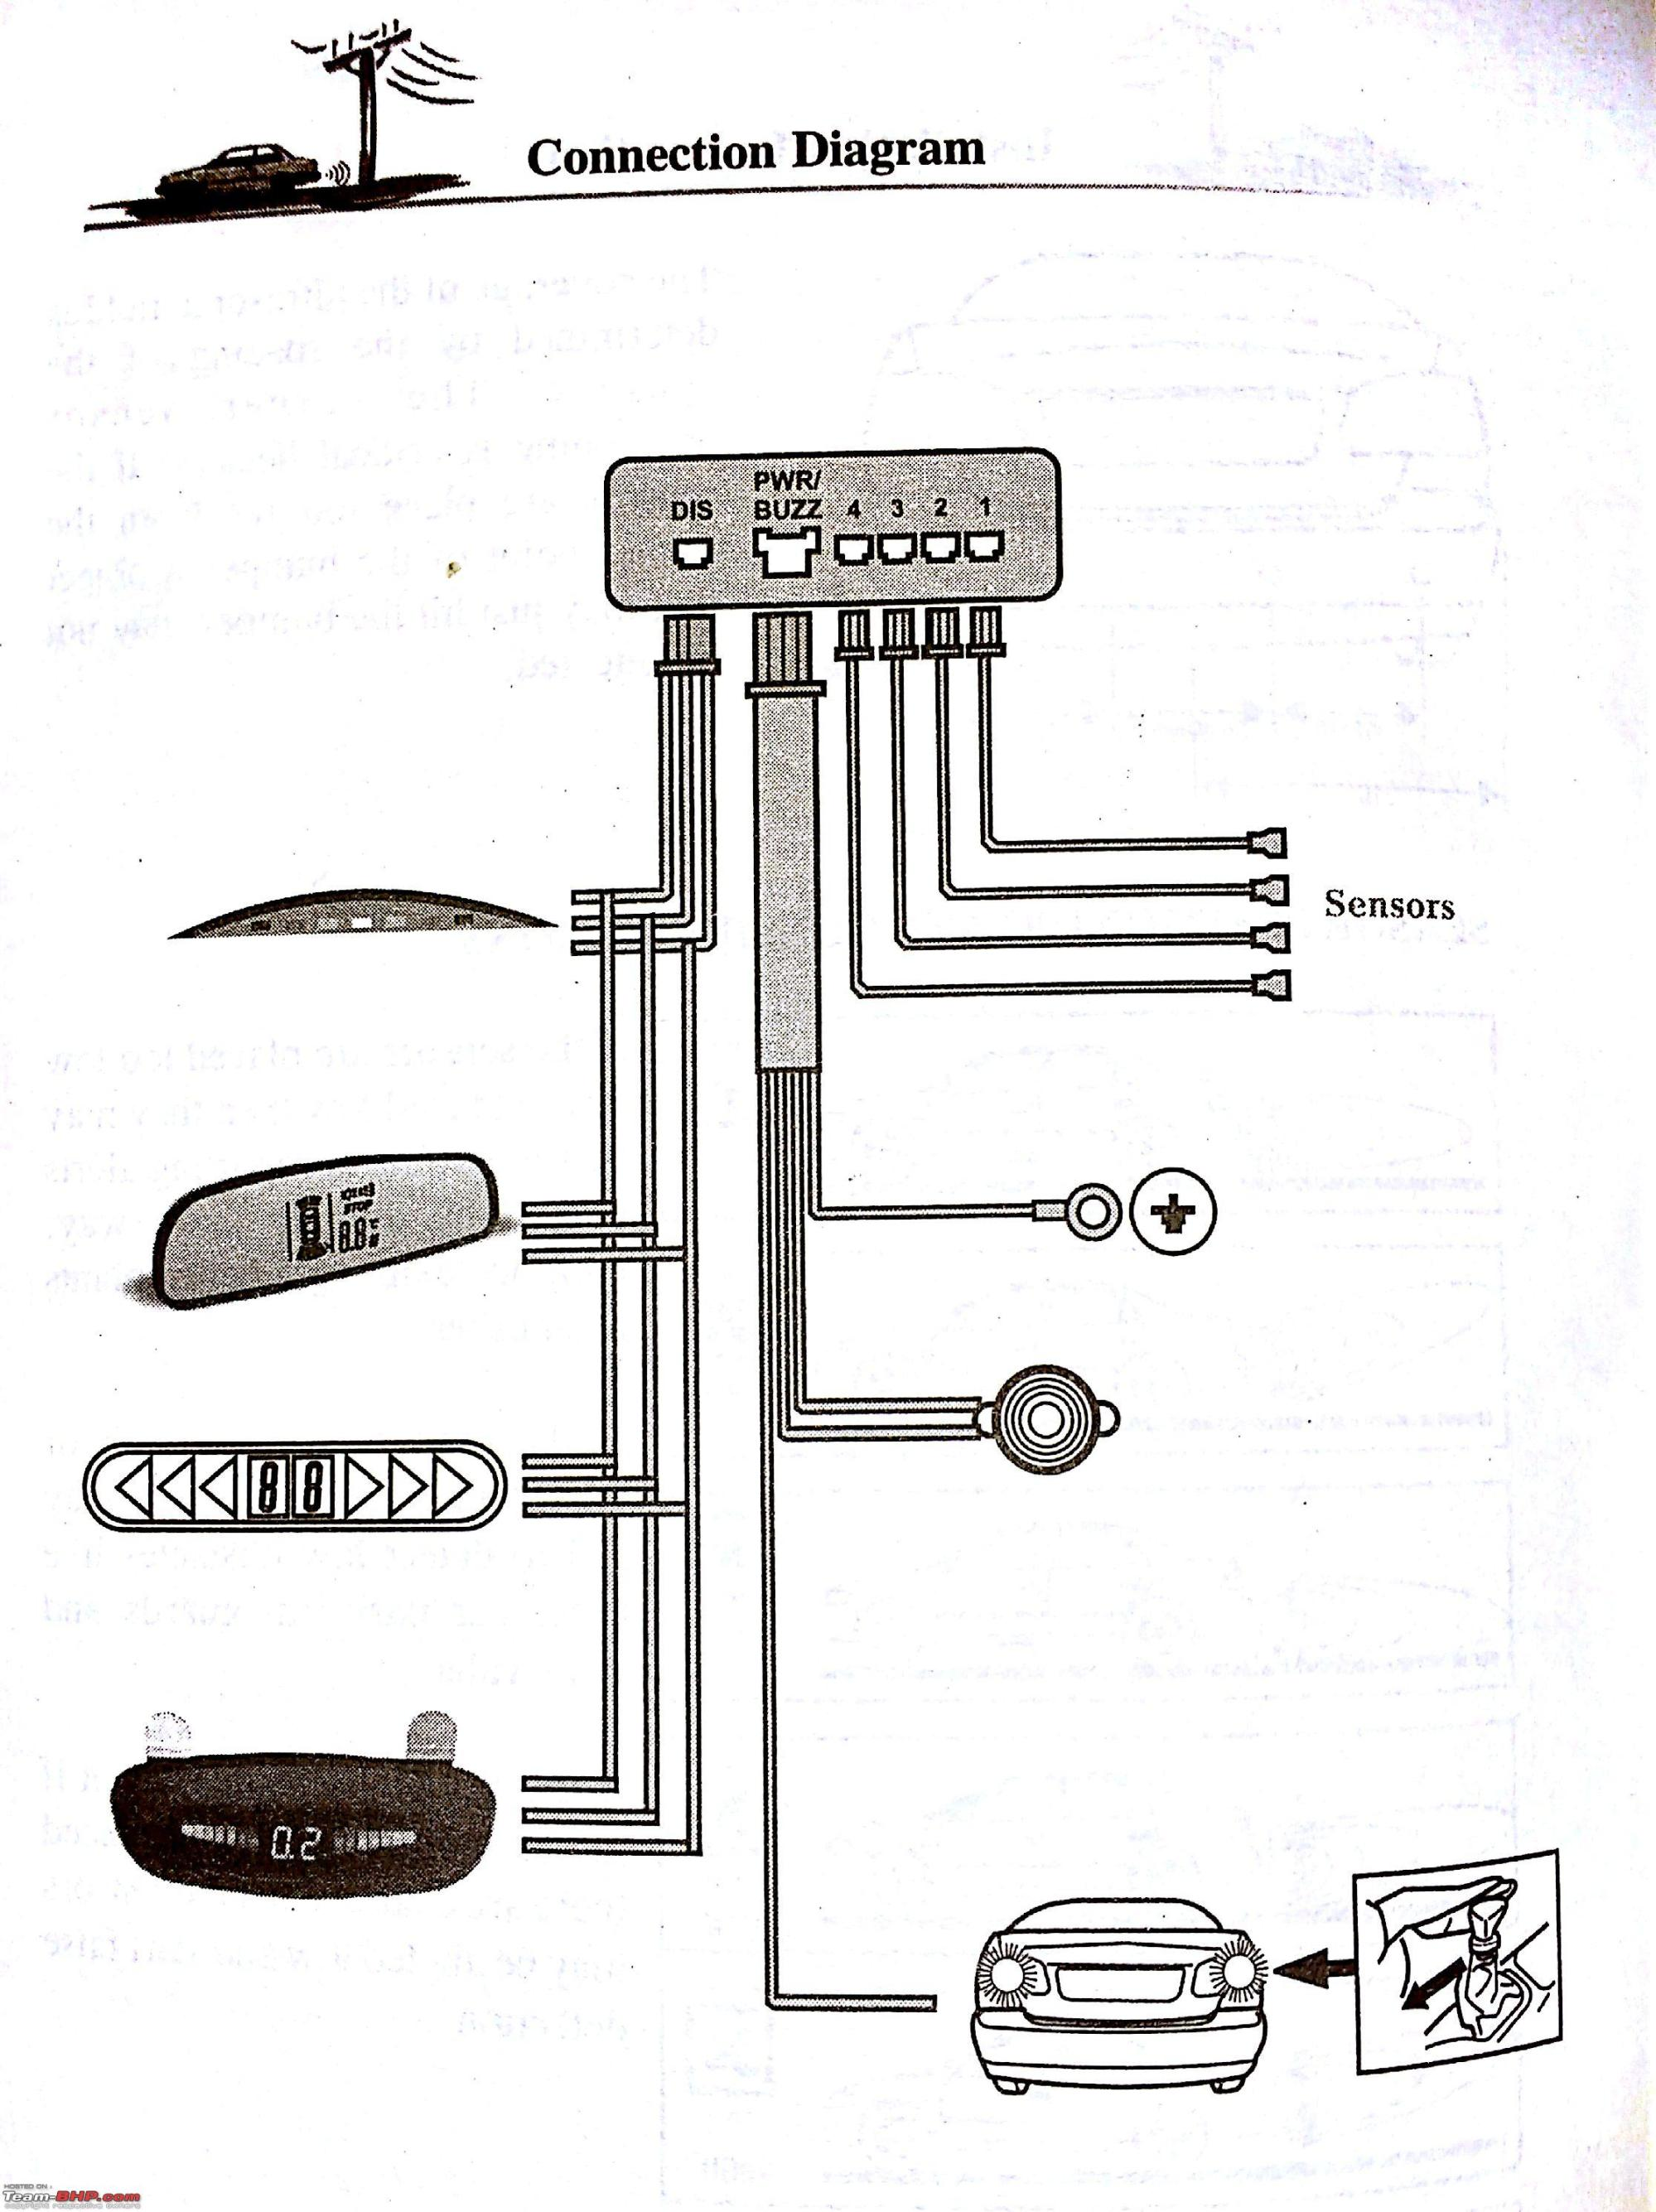 hight resolution of ford festiva wiring diagram wiring library source i need the wiring diagram for a 1996 honda accord lx 2 2l 5sp for furthermore